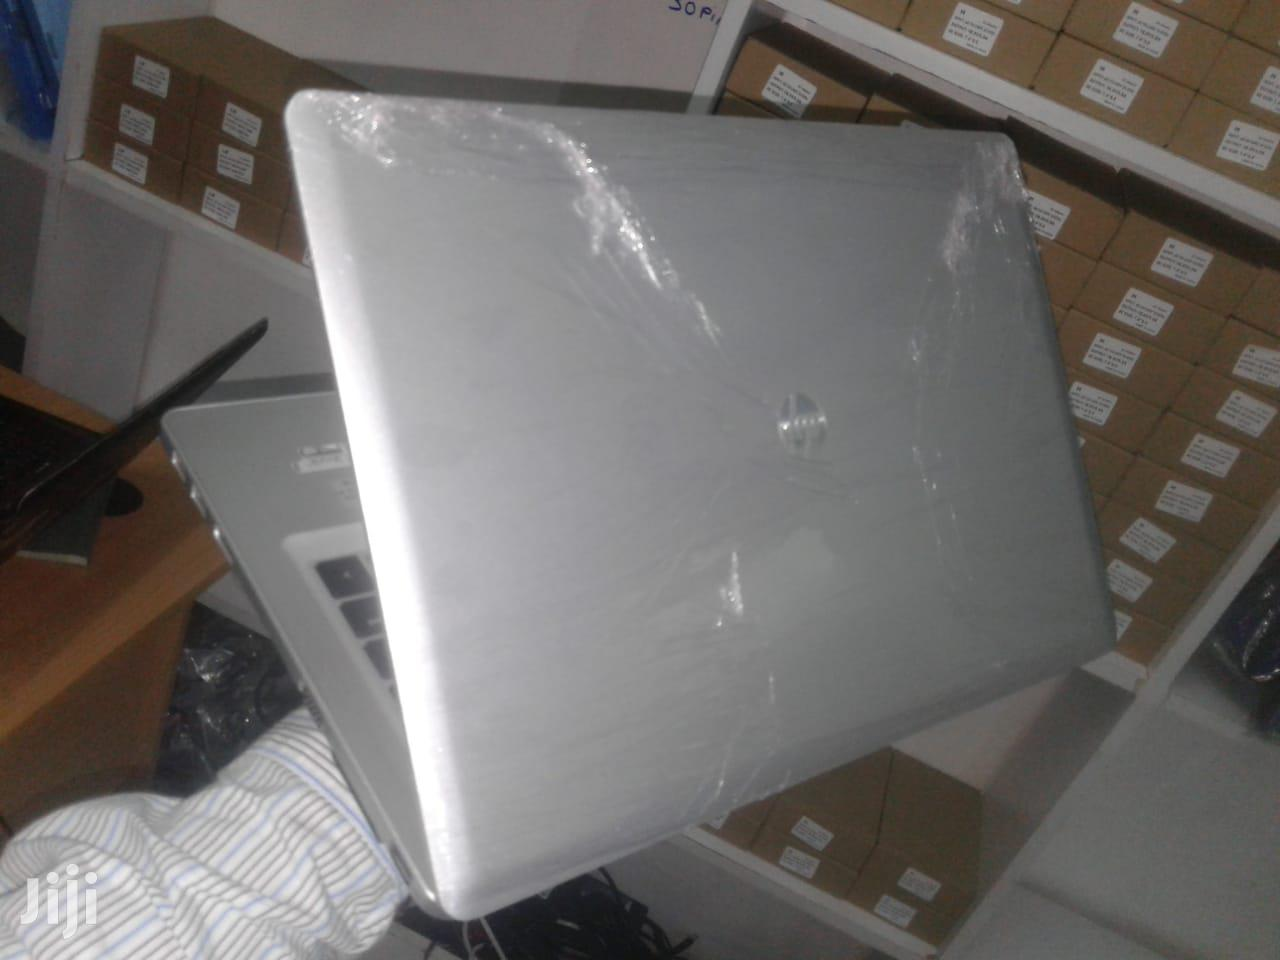 New Laptop HP 32GB Intel Core i5 HDD 1T | Laptops & Computers for sale in Nairobi Central, Nairobi, Kenya